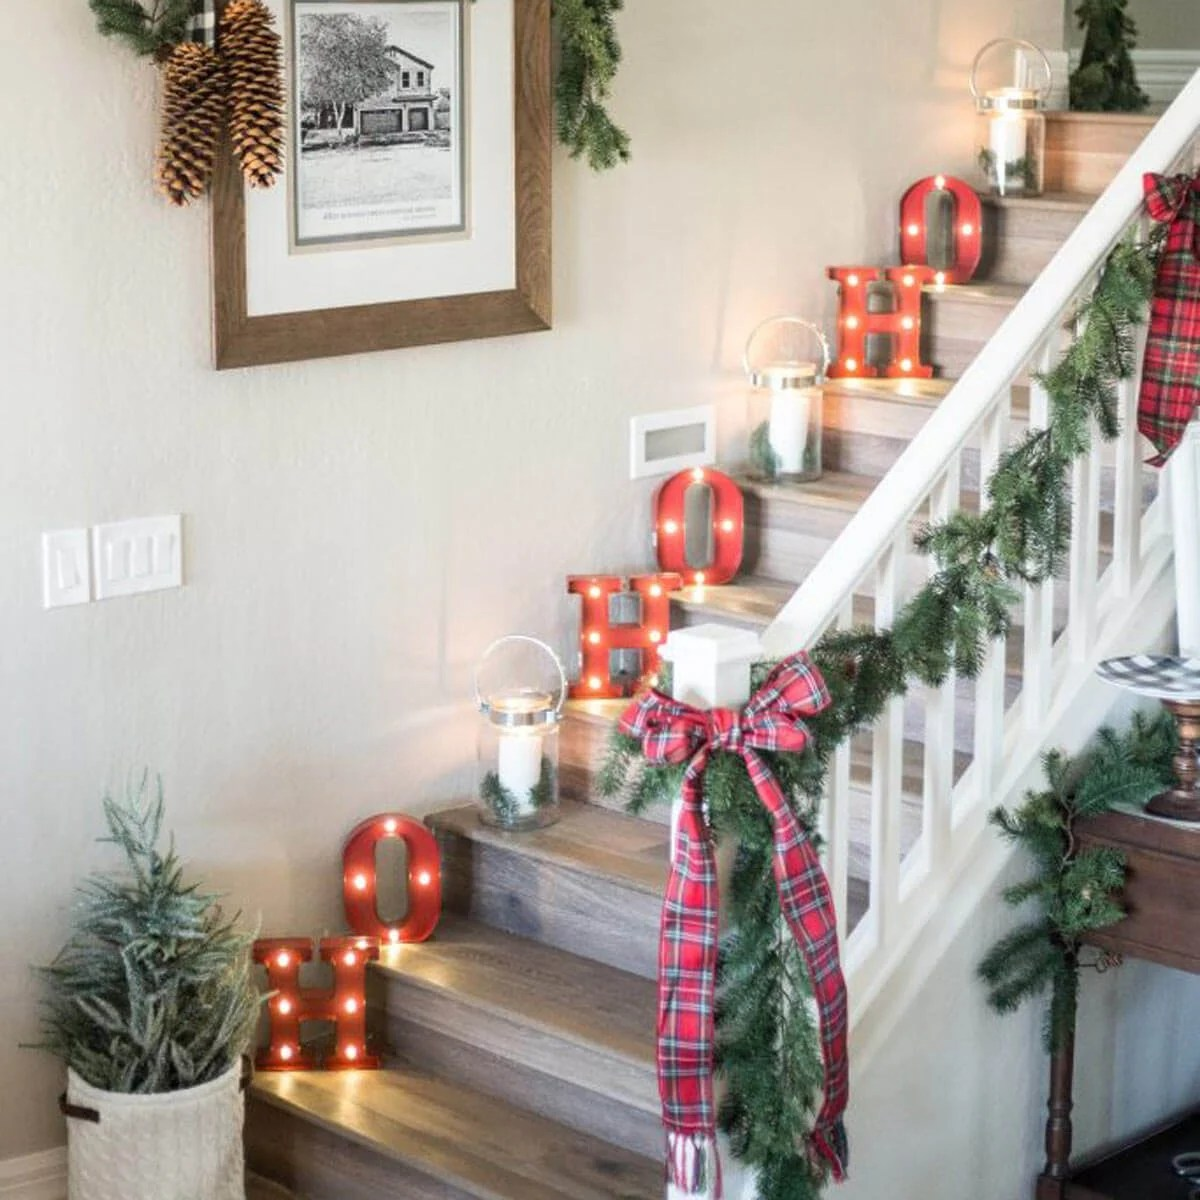 House Decors Ideas 29 Ideas For Holiday Decor In Every Room The Family Handyman